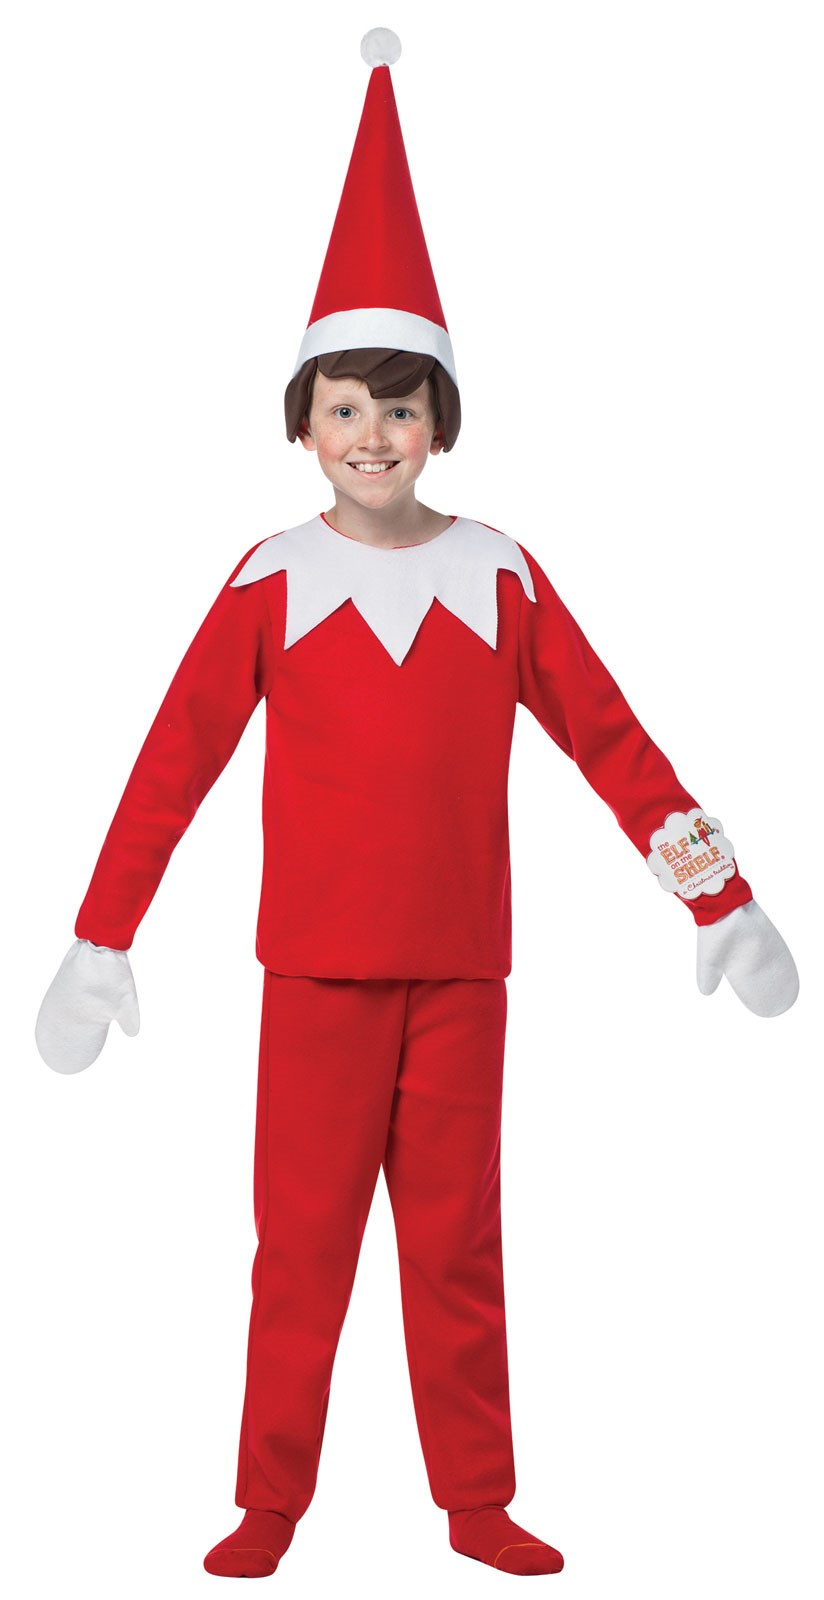 Elf on the Shelf Costume For Kids | BuyCostumes.com